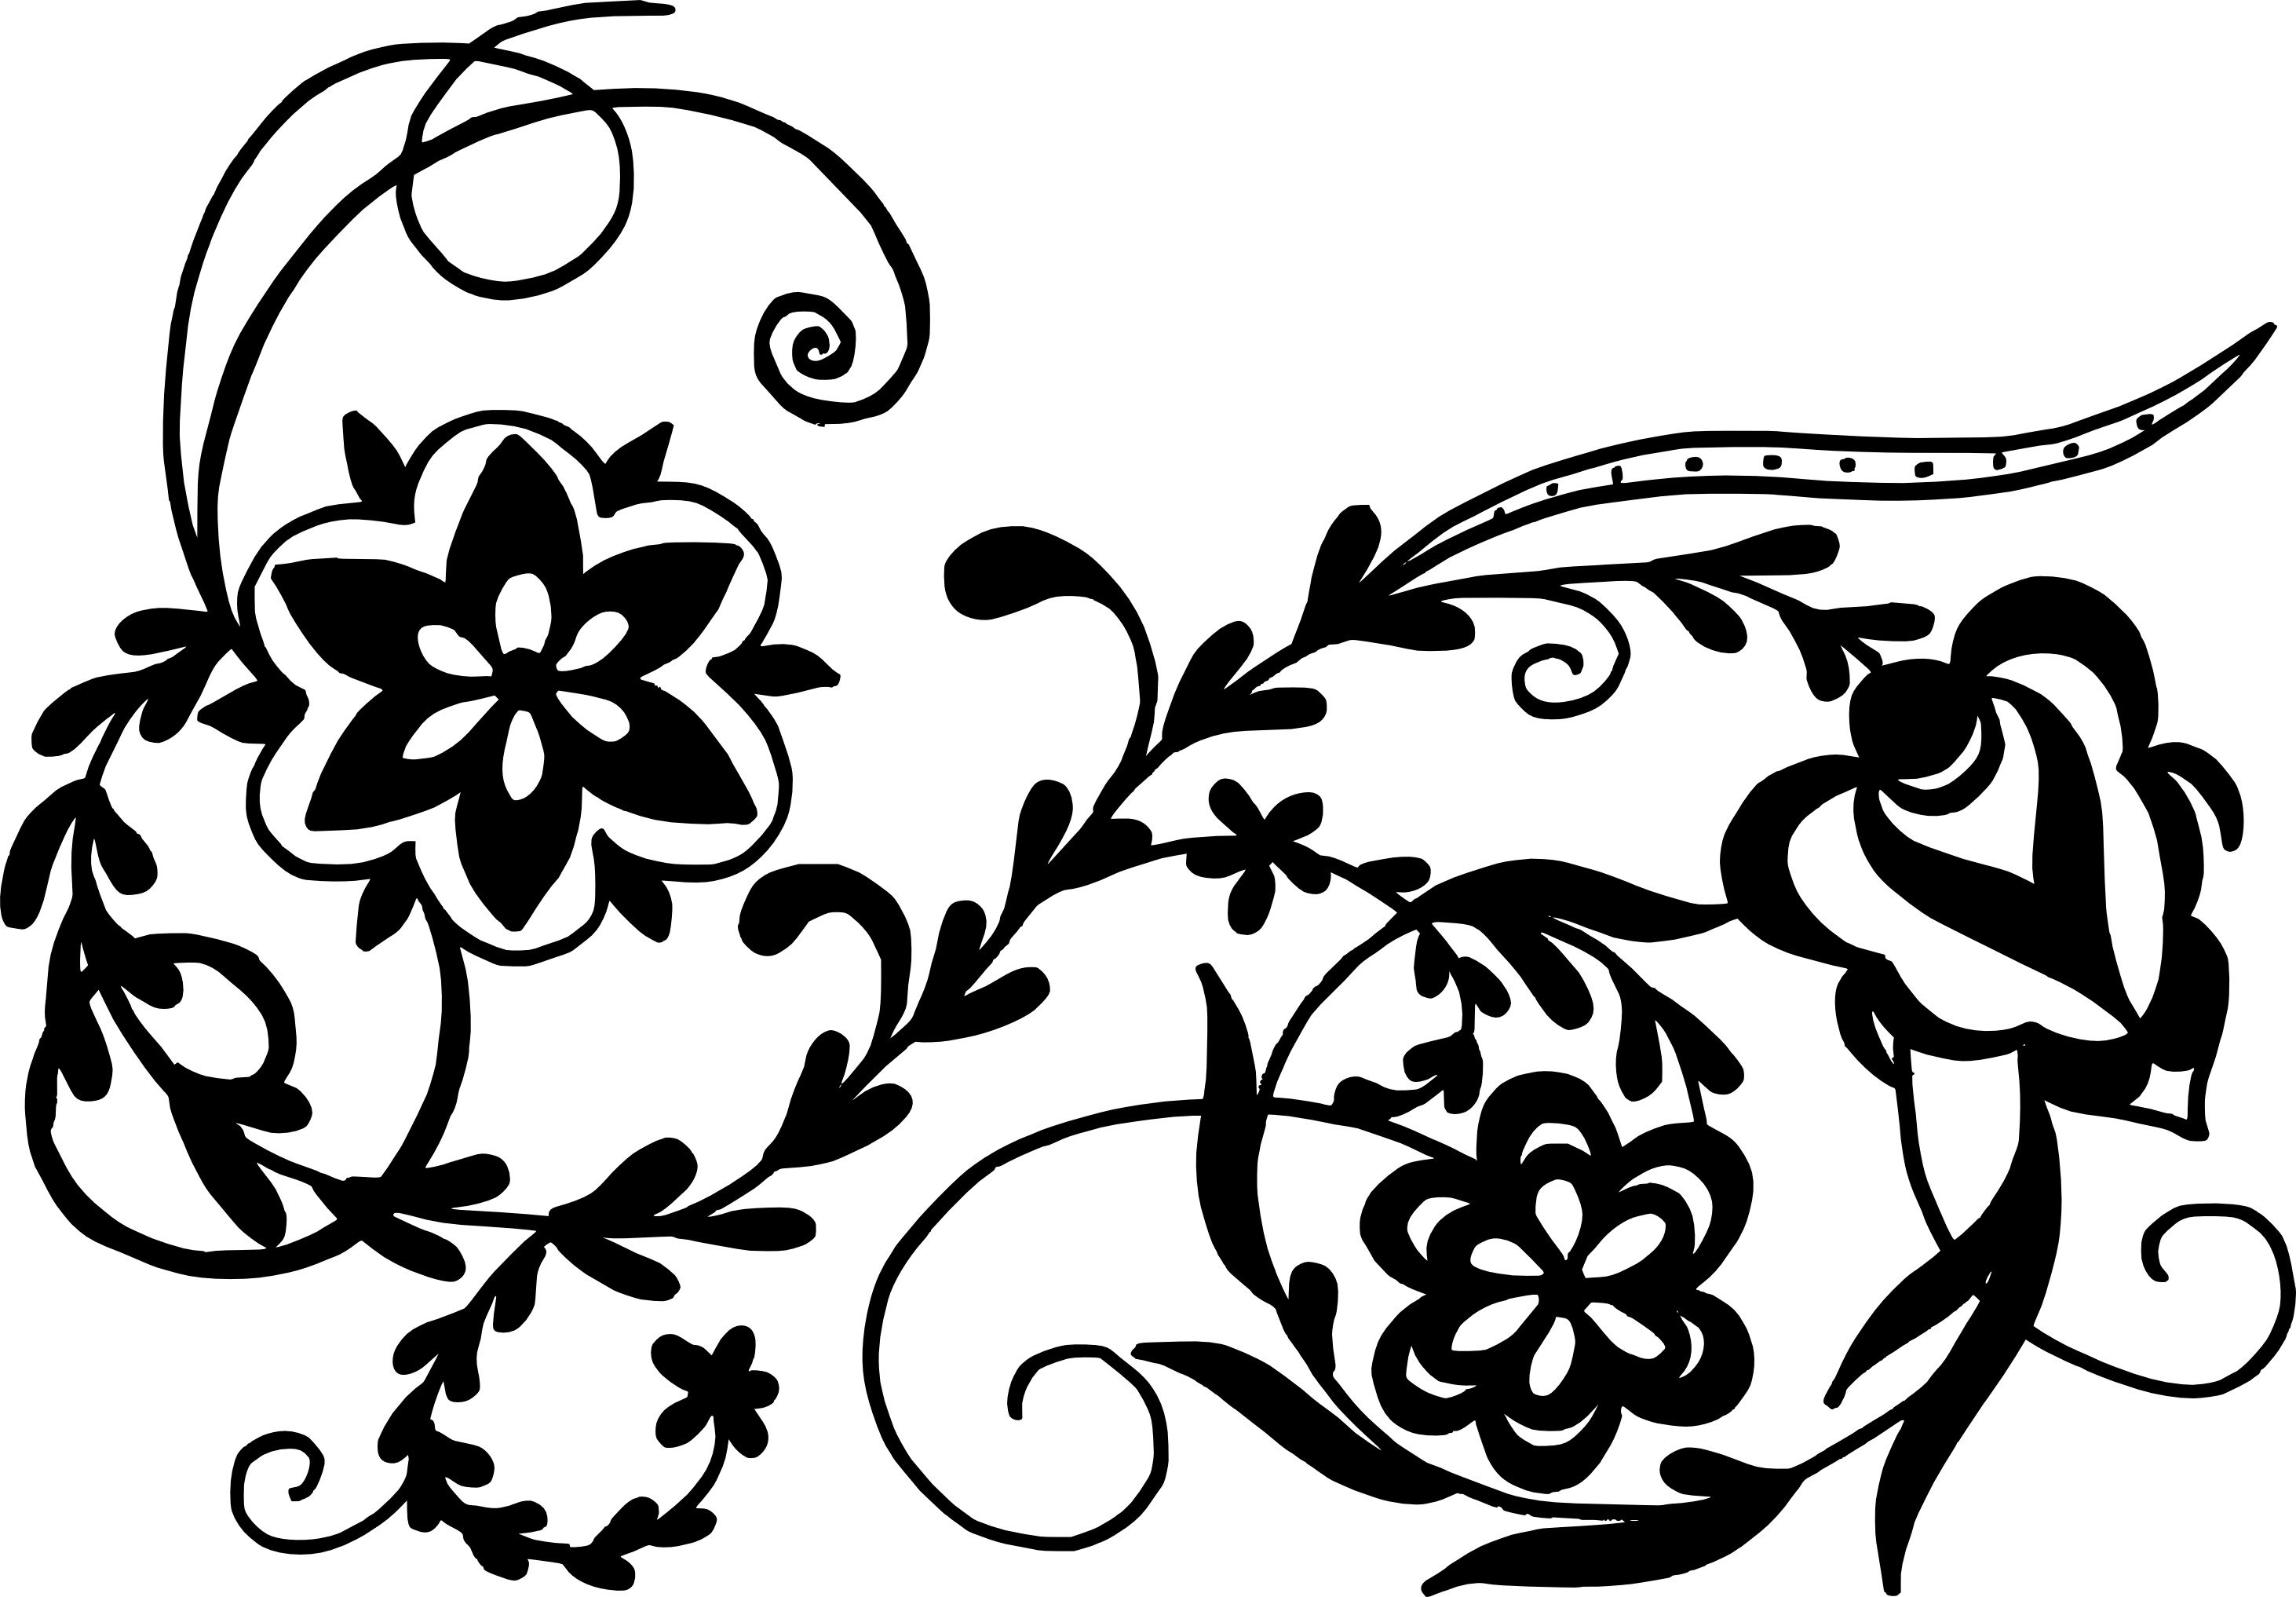 11 Flower Ornaments (PNG Transparent, SVG)